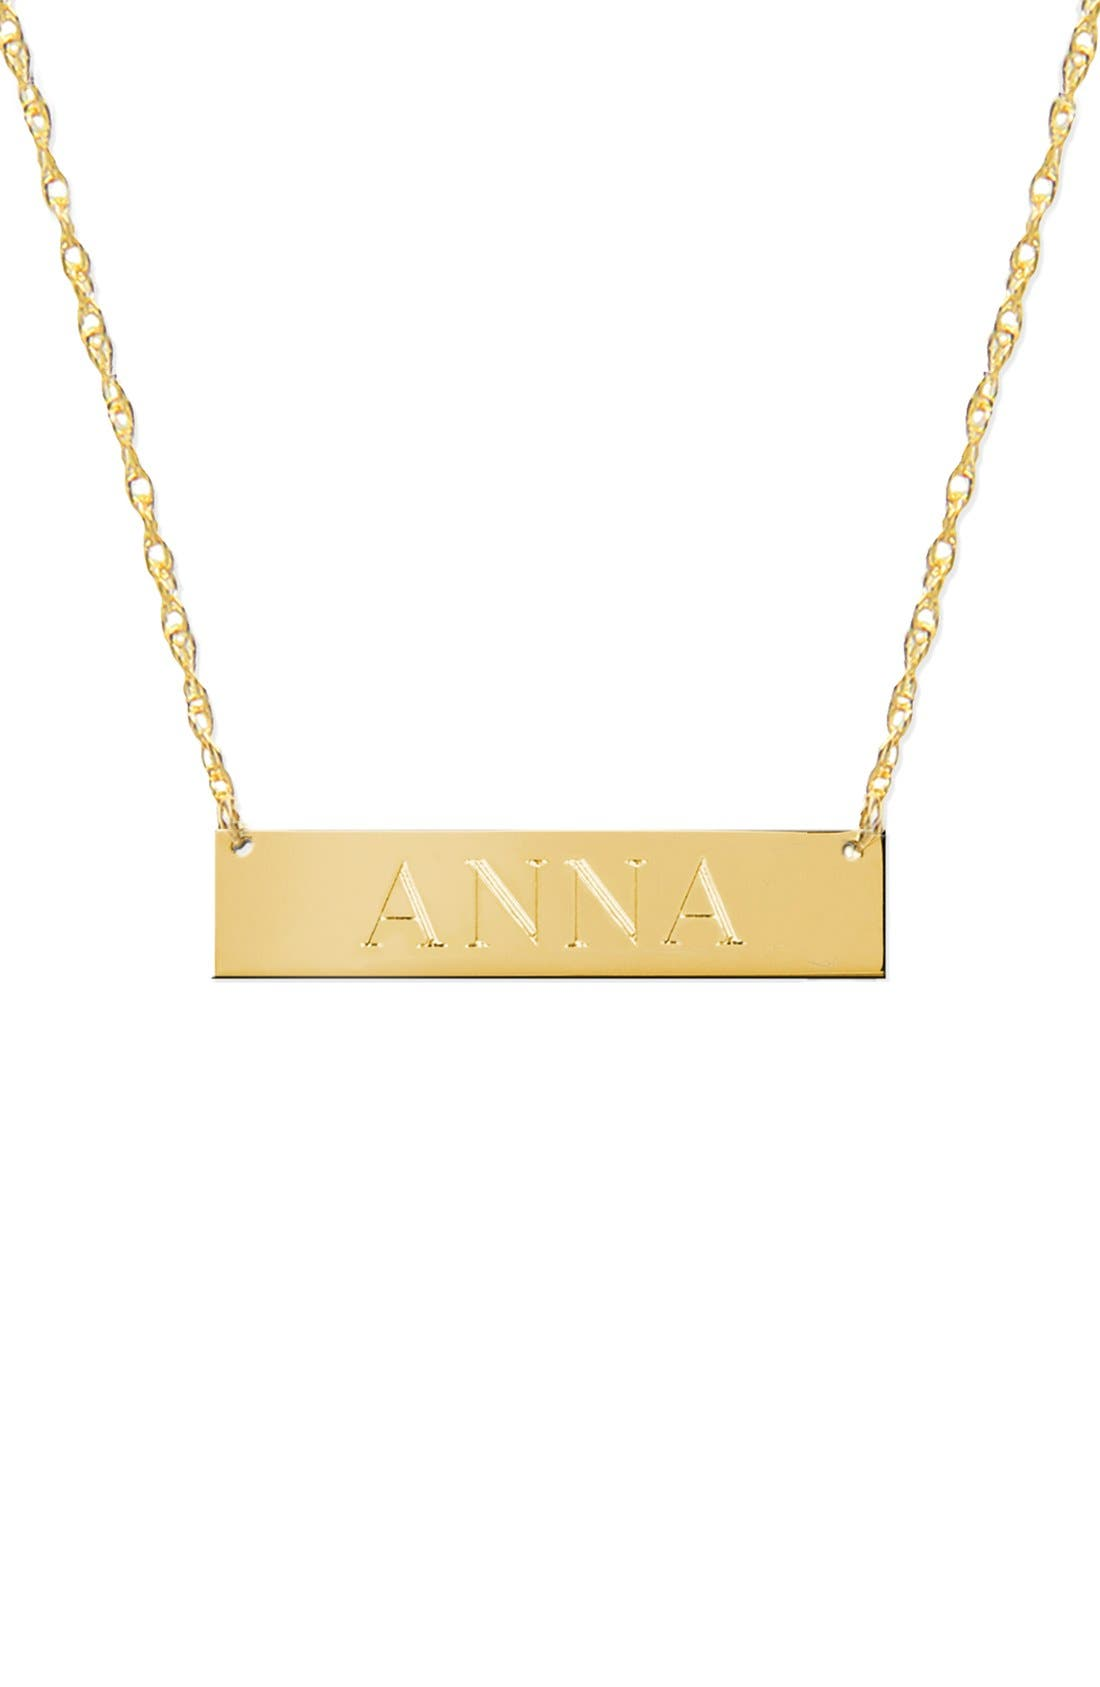 Personalized Bar Pendant Necklace,                             Main thumbnail 1, color,                             Gold